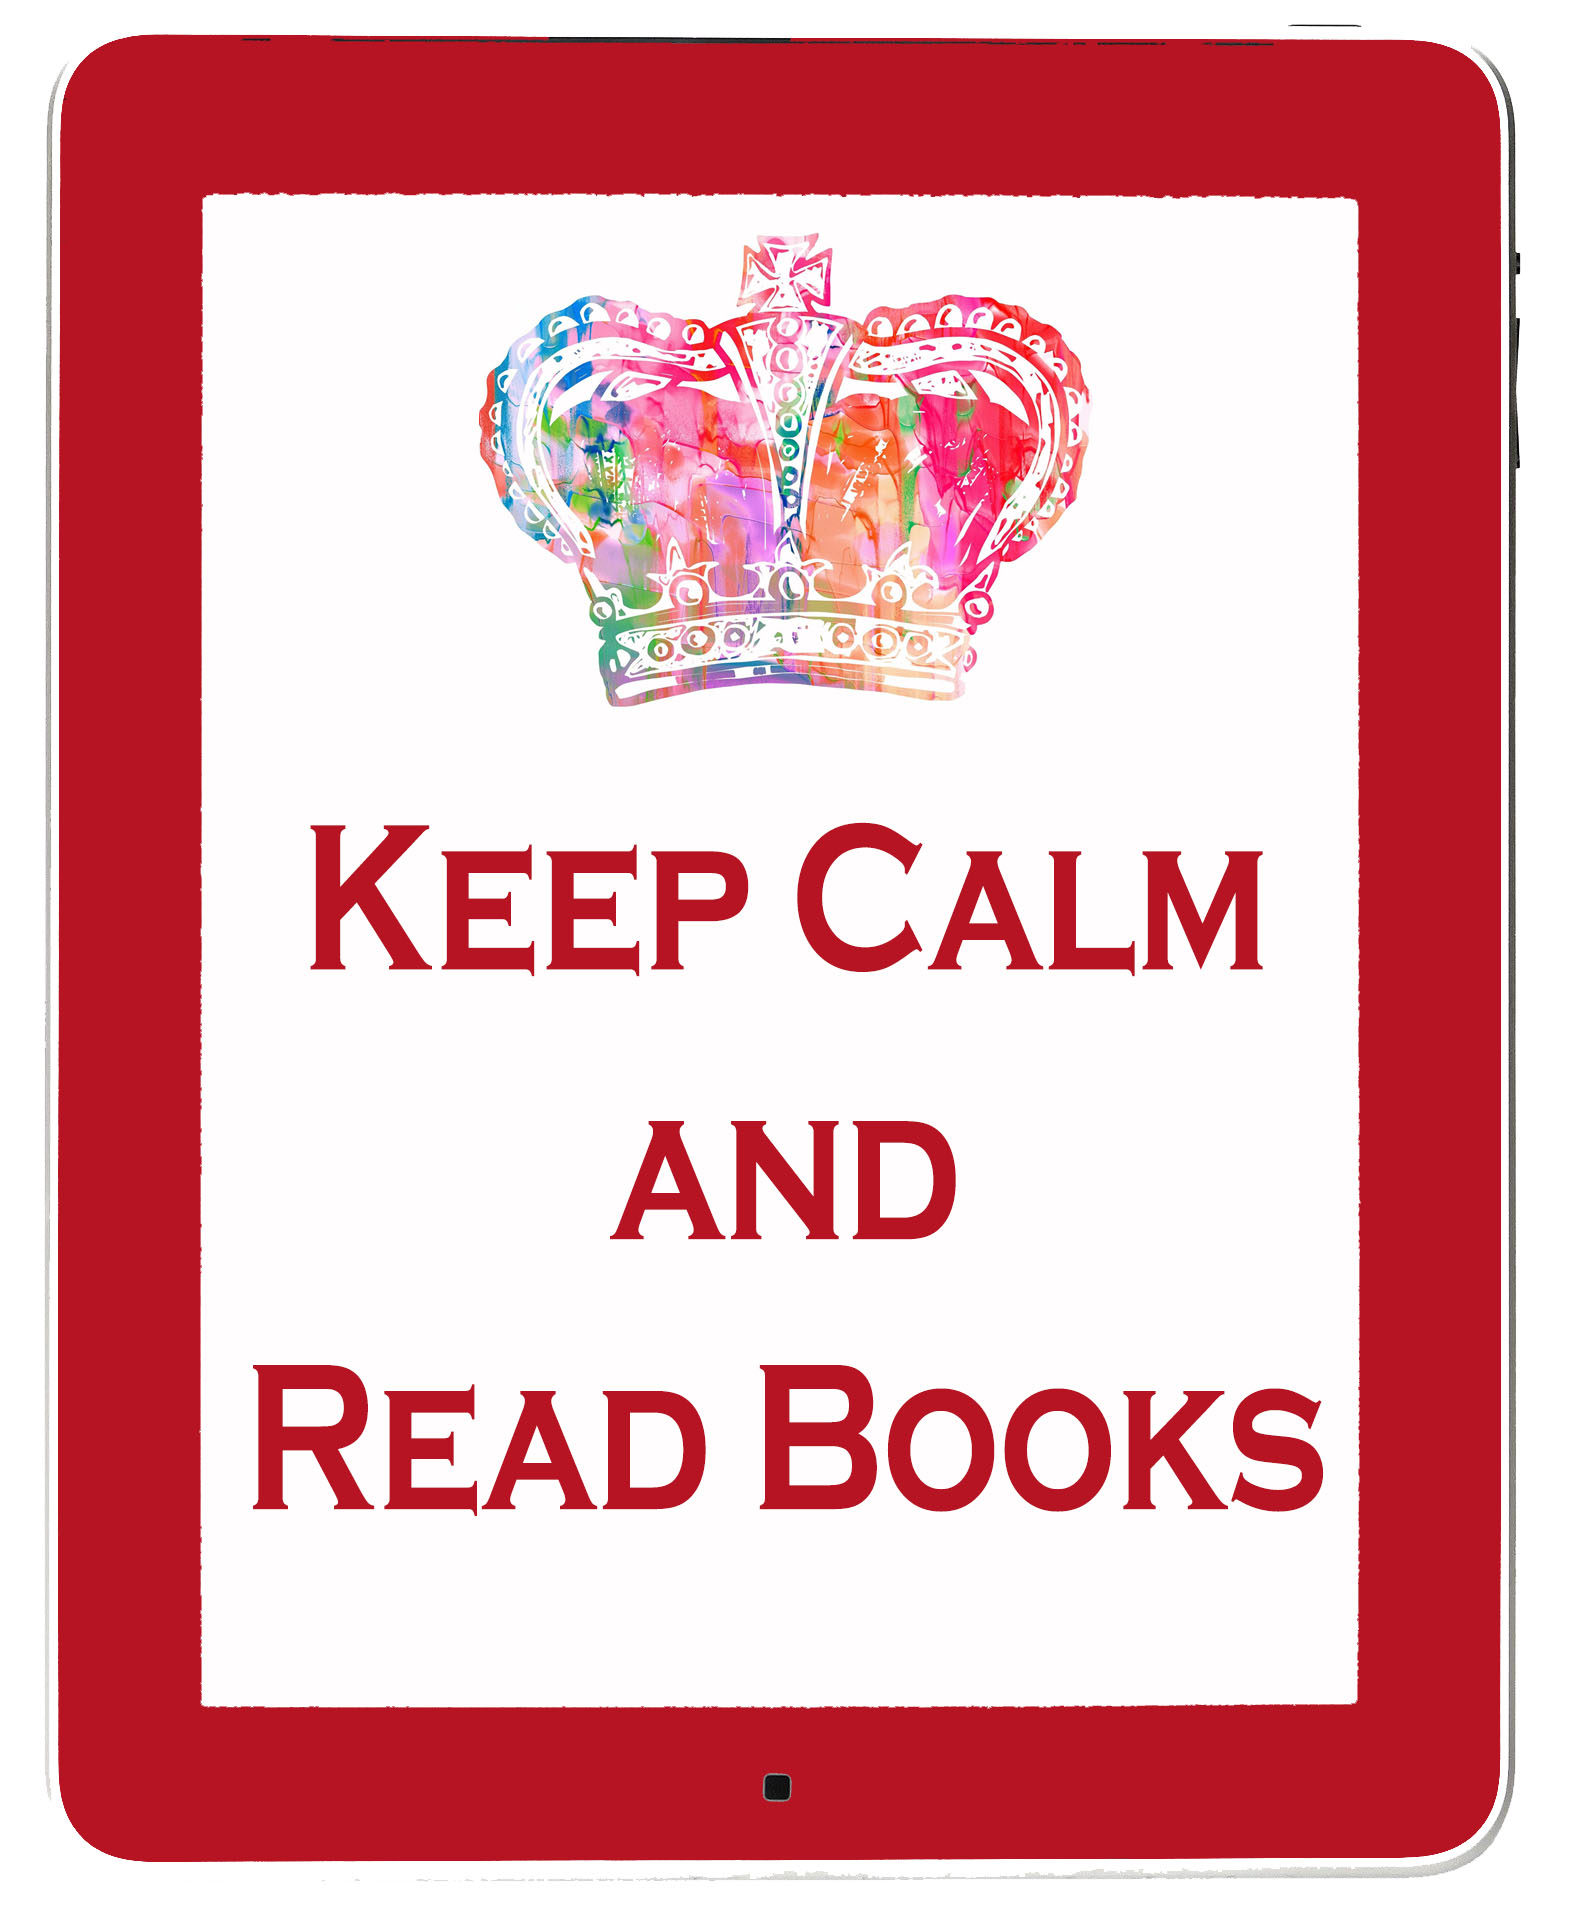 KeepCalm_red_3